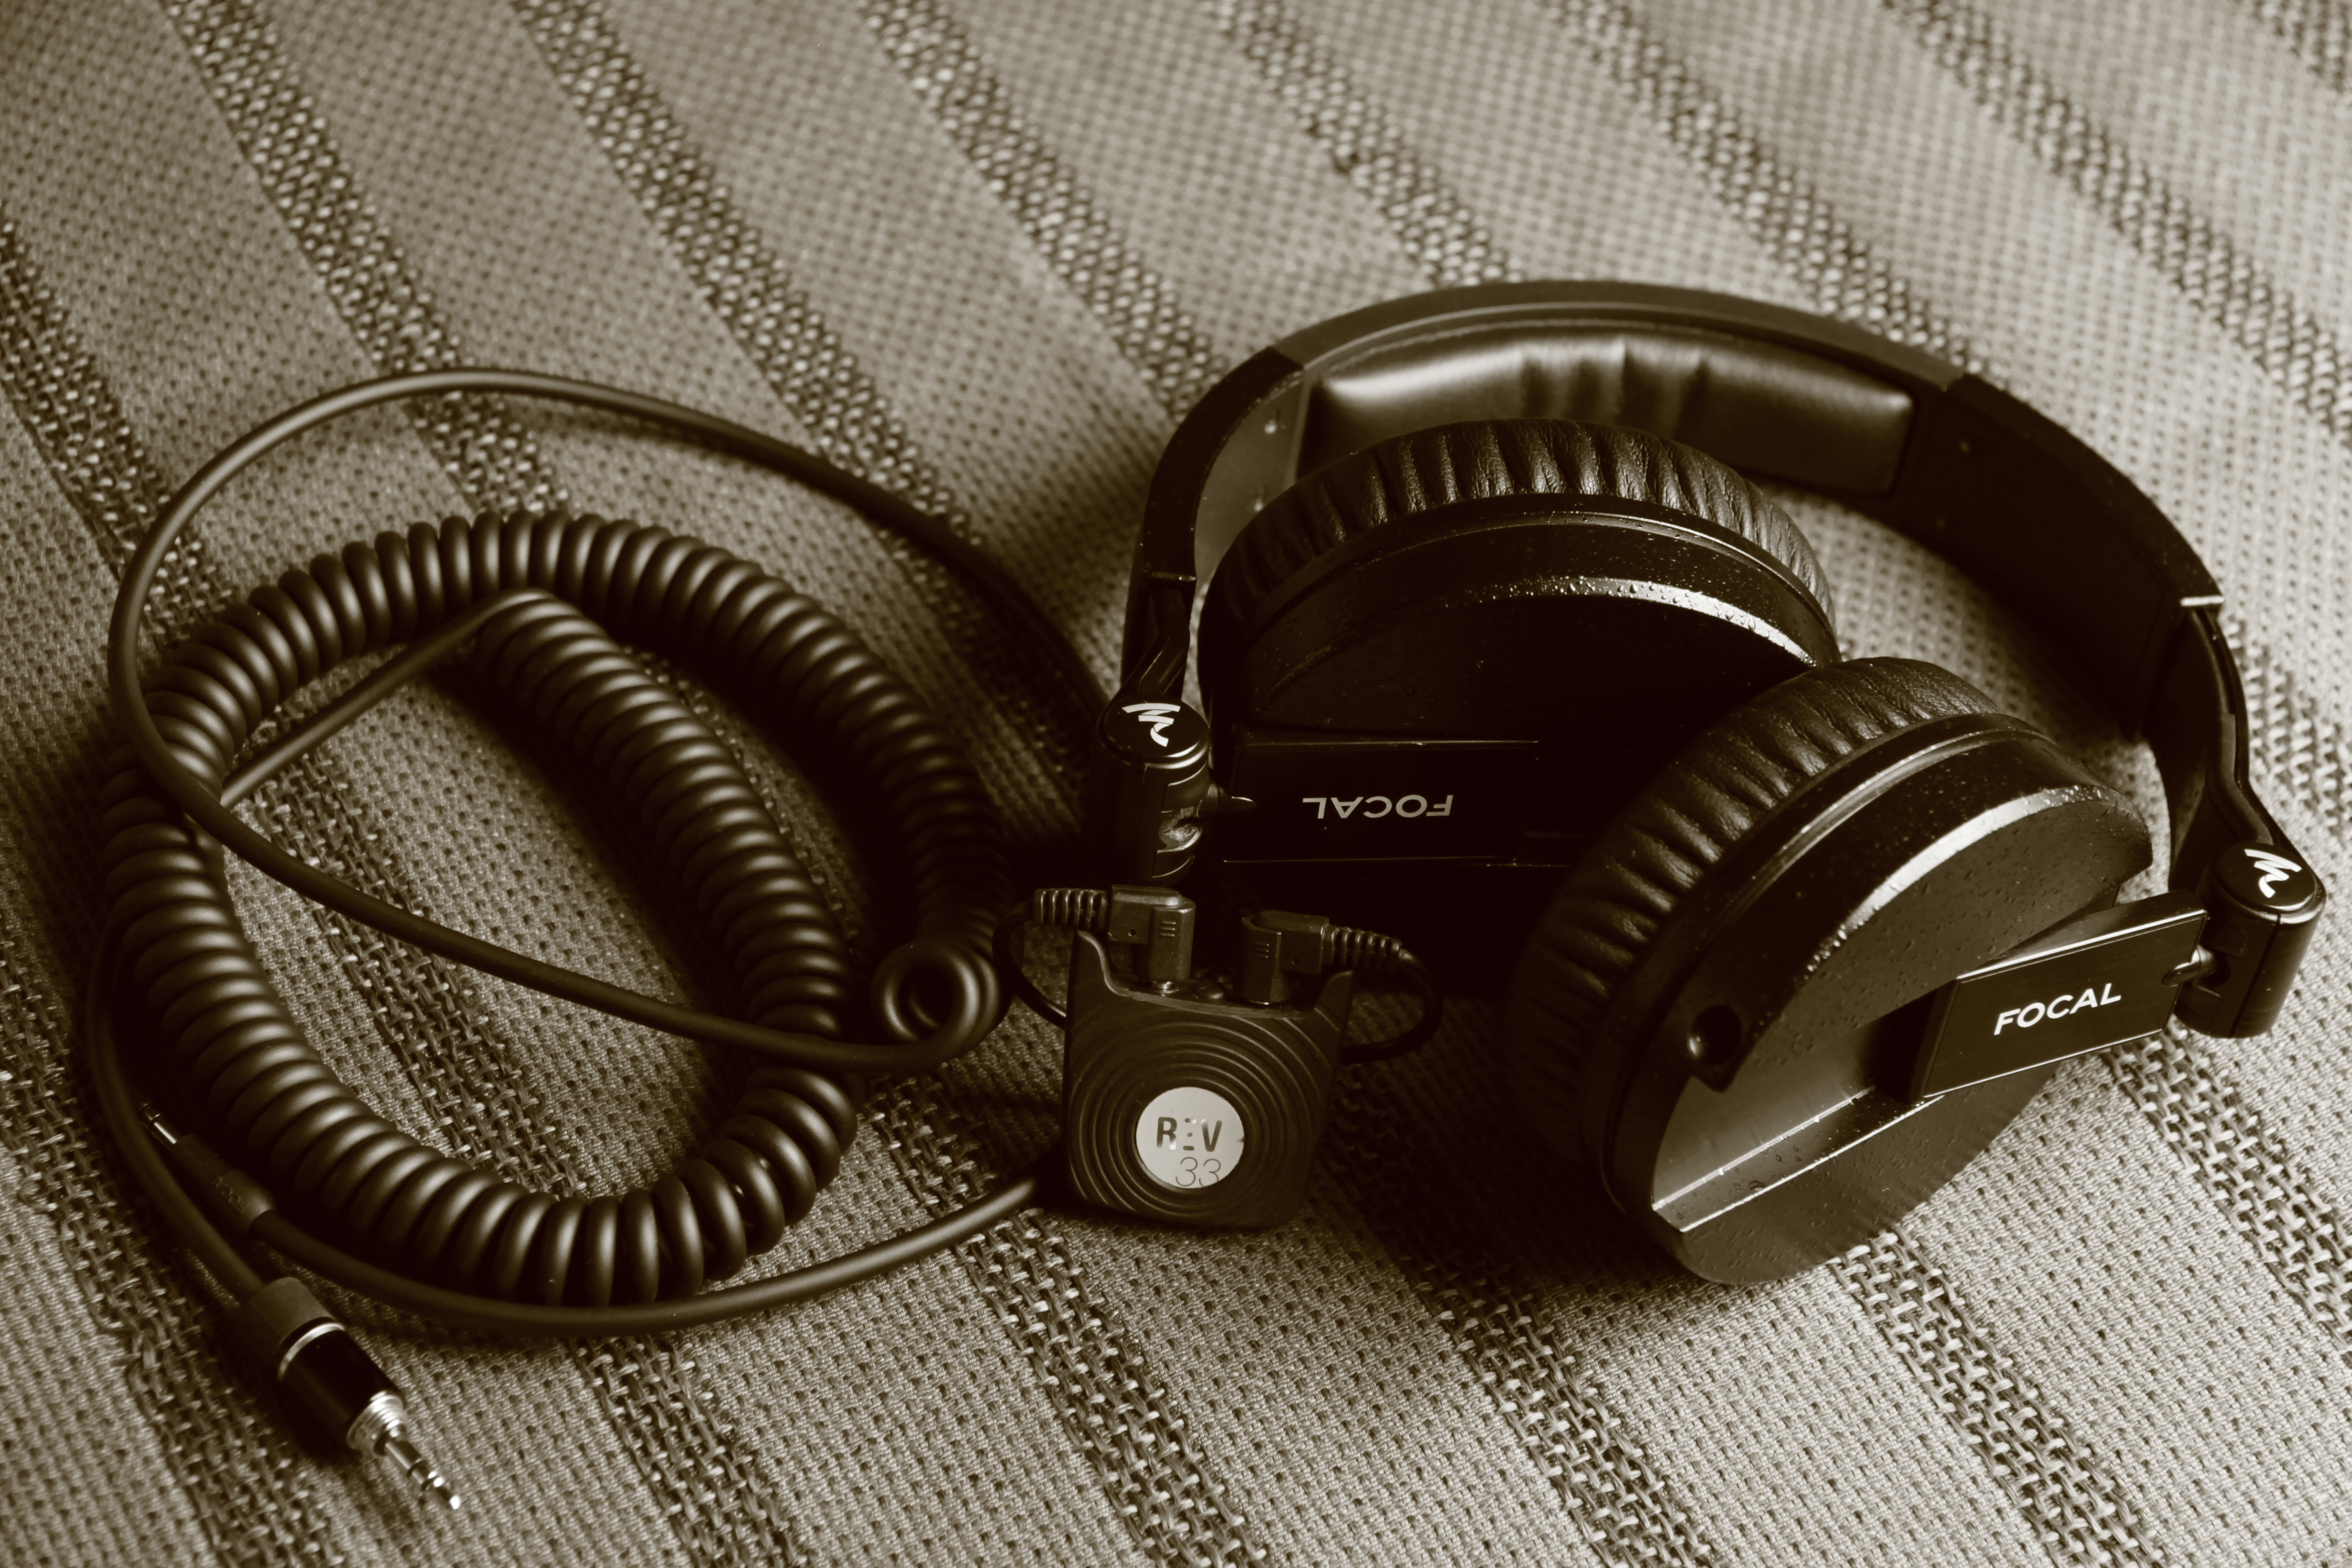 Focal Spirit headphones with Rev33